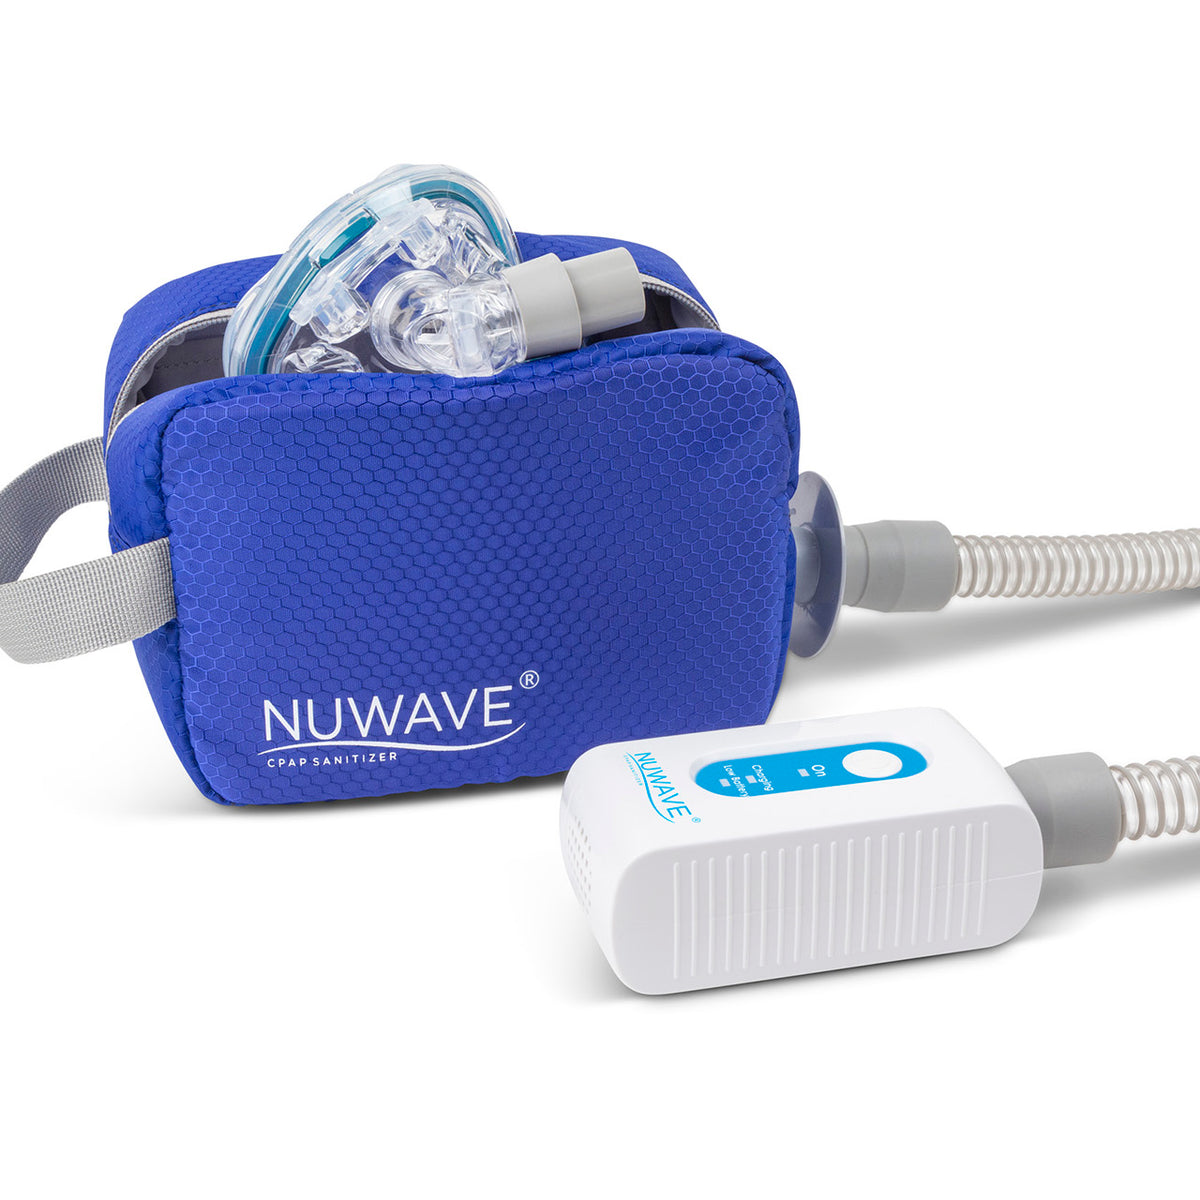 White with blue part CPAP machine cleaner in travel size with open travel blue bag by Western Medical Inc.